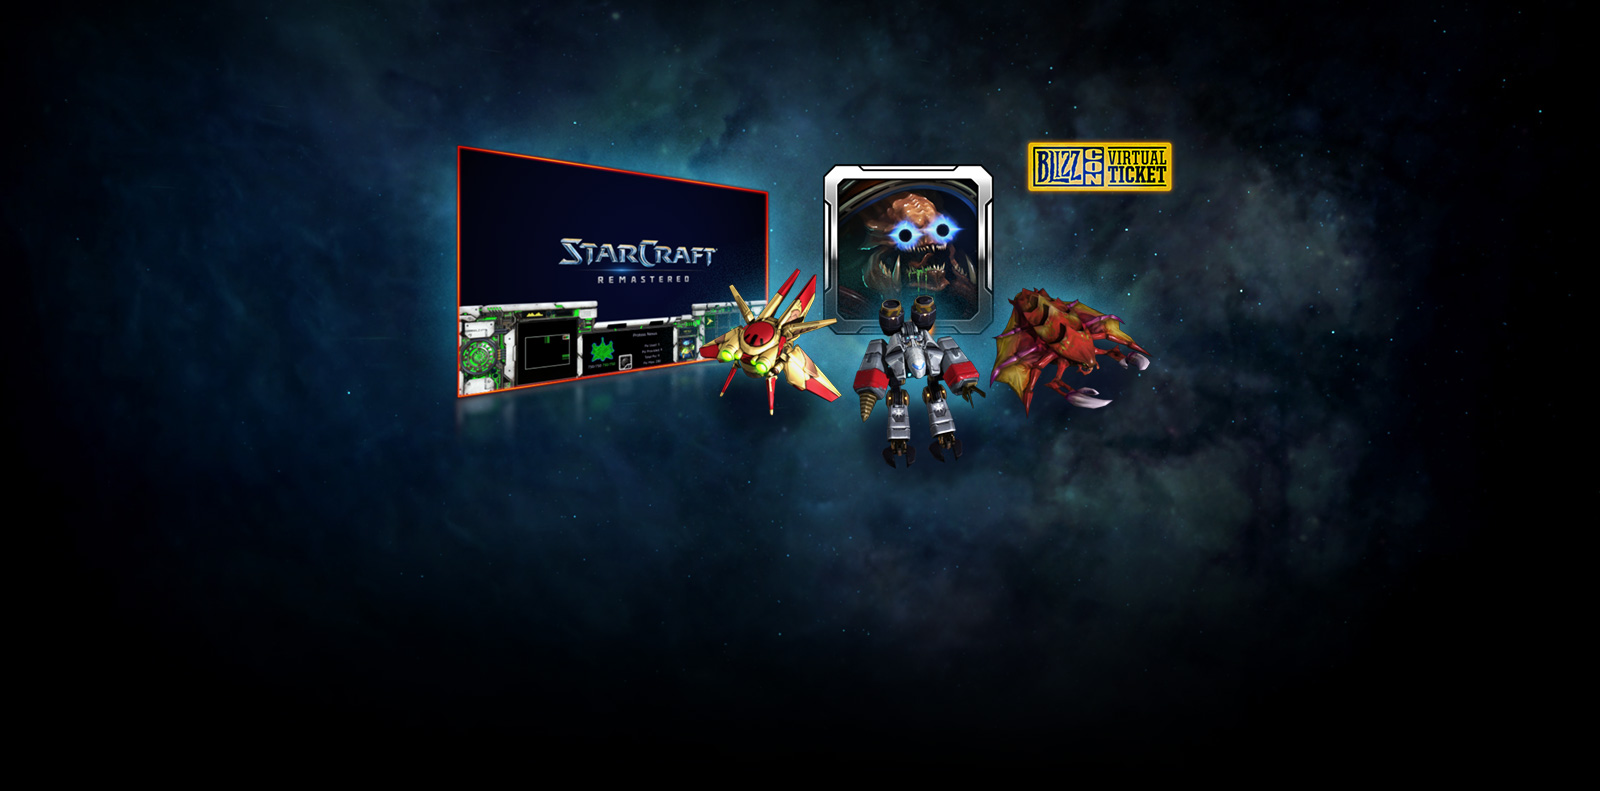 StarCraft BlizzCon In-Game Goodies Are Here